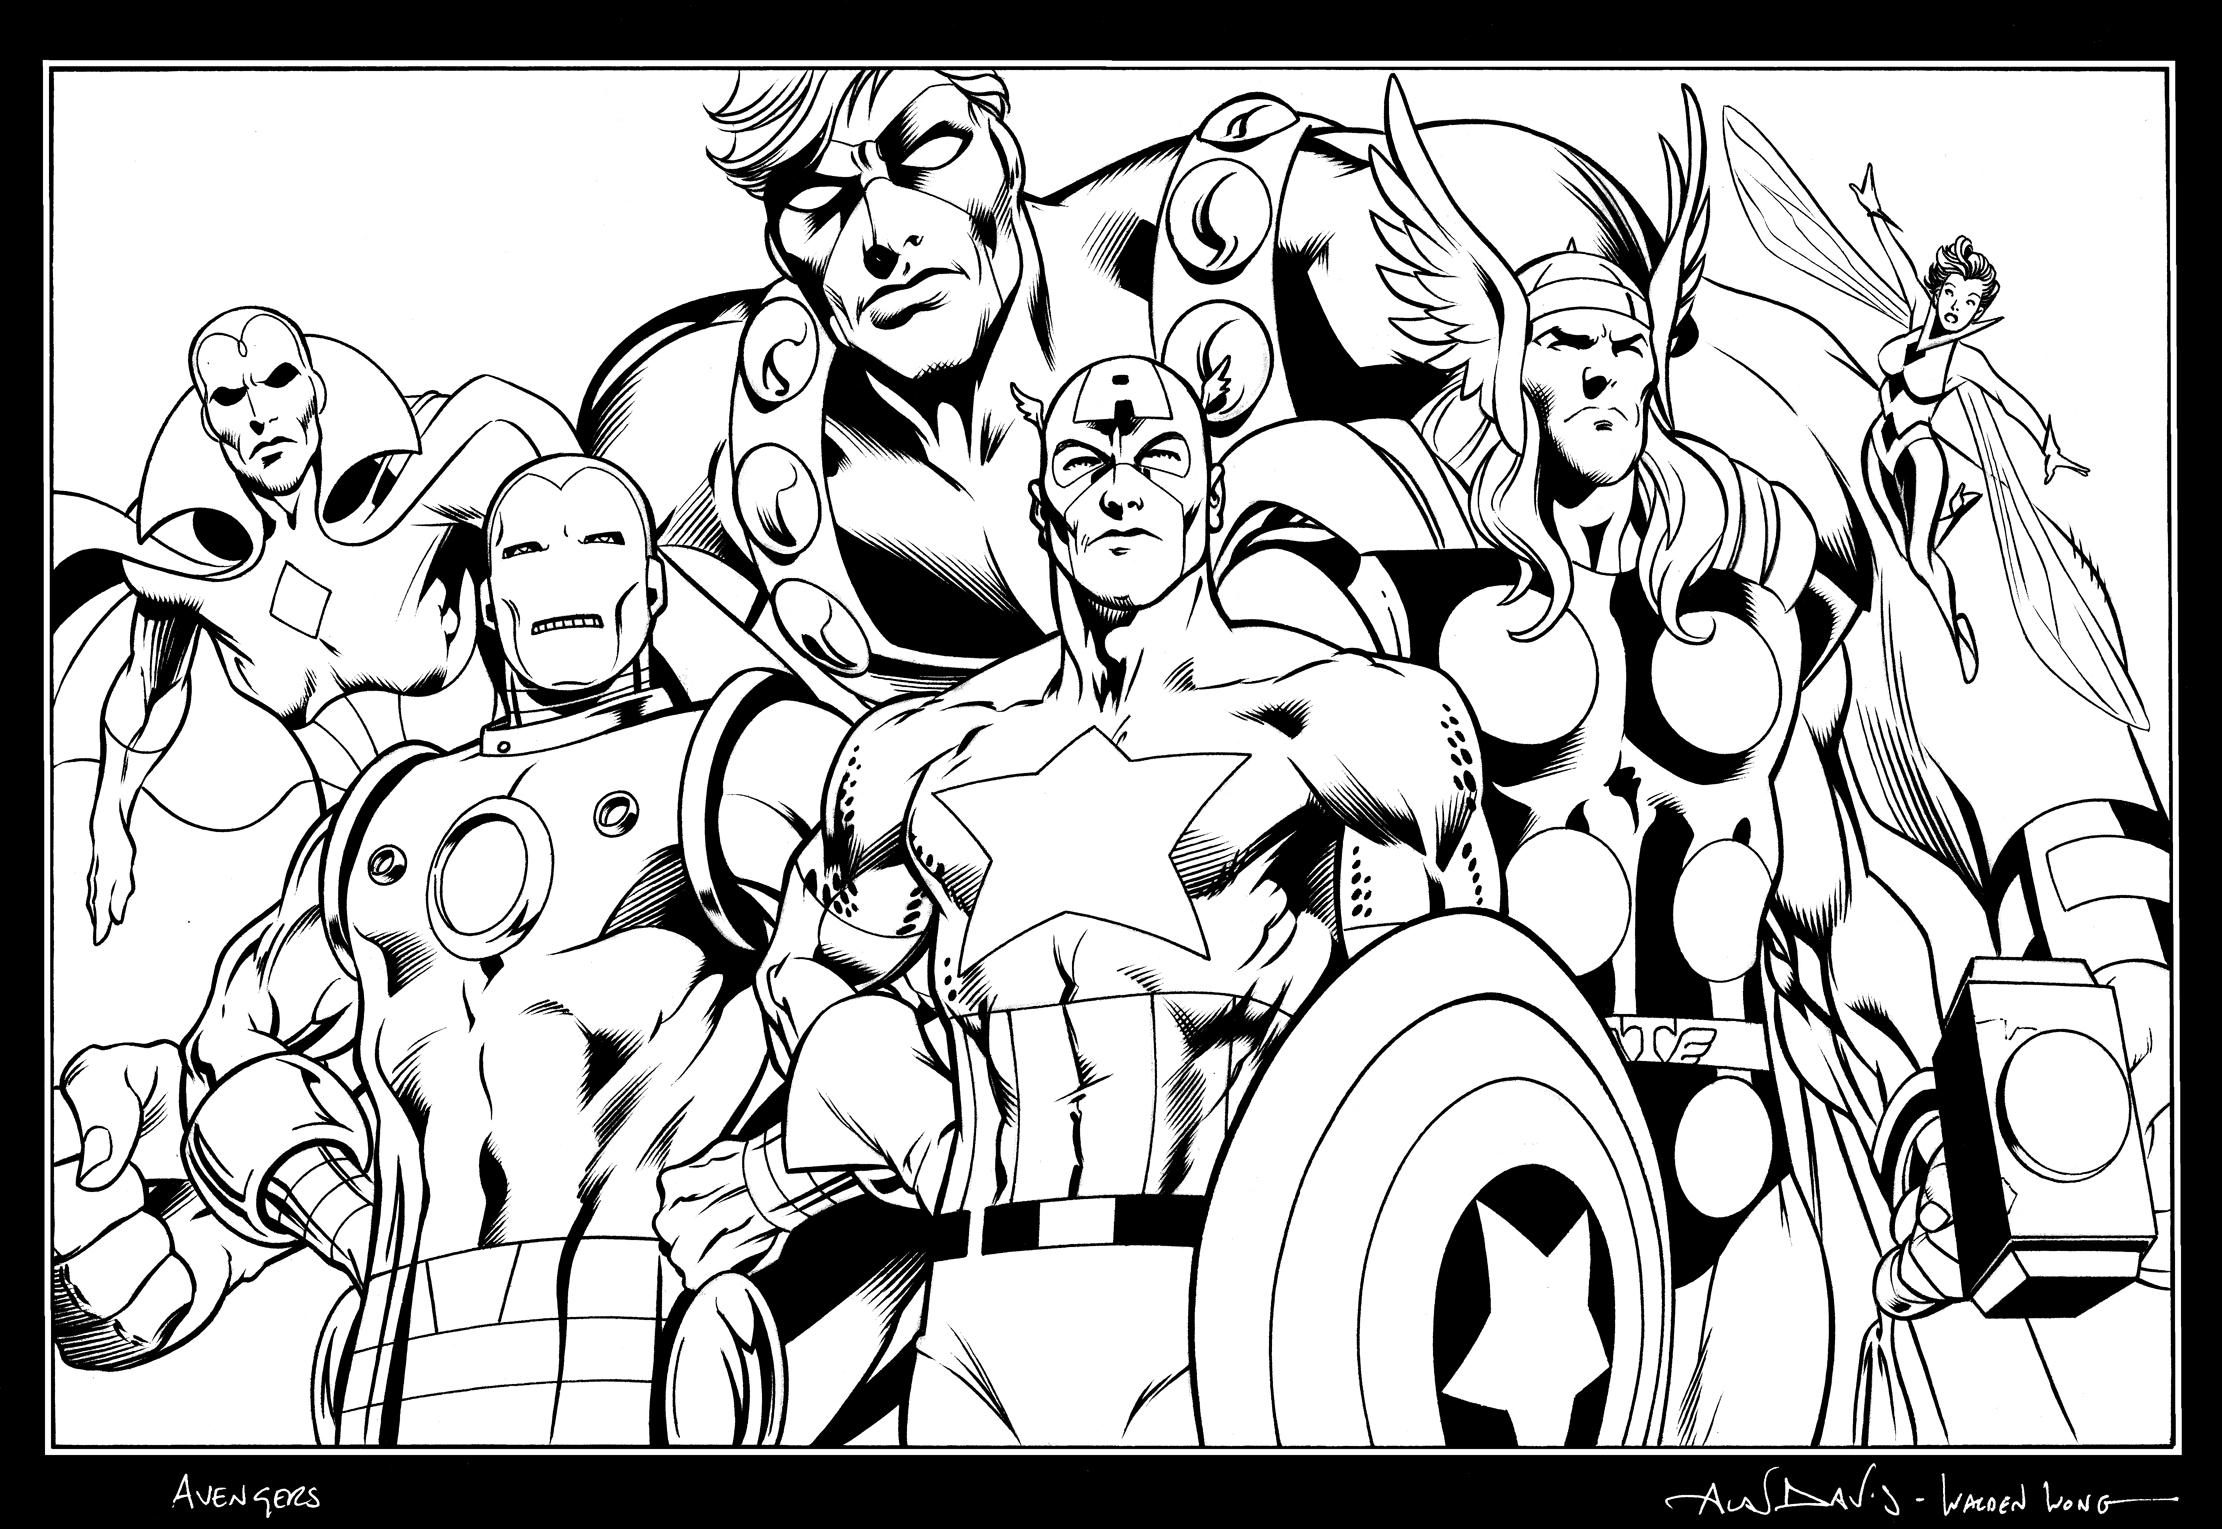 Avengers by waldenwong on deviantart for Avengers coloring book pages